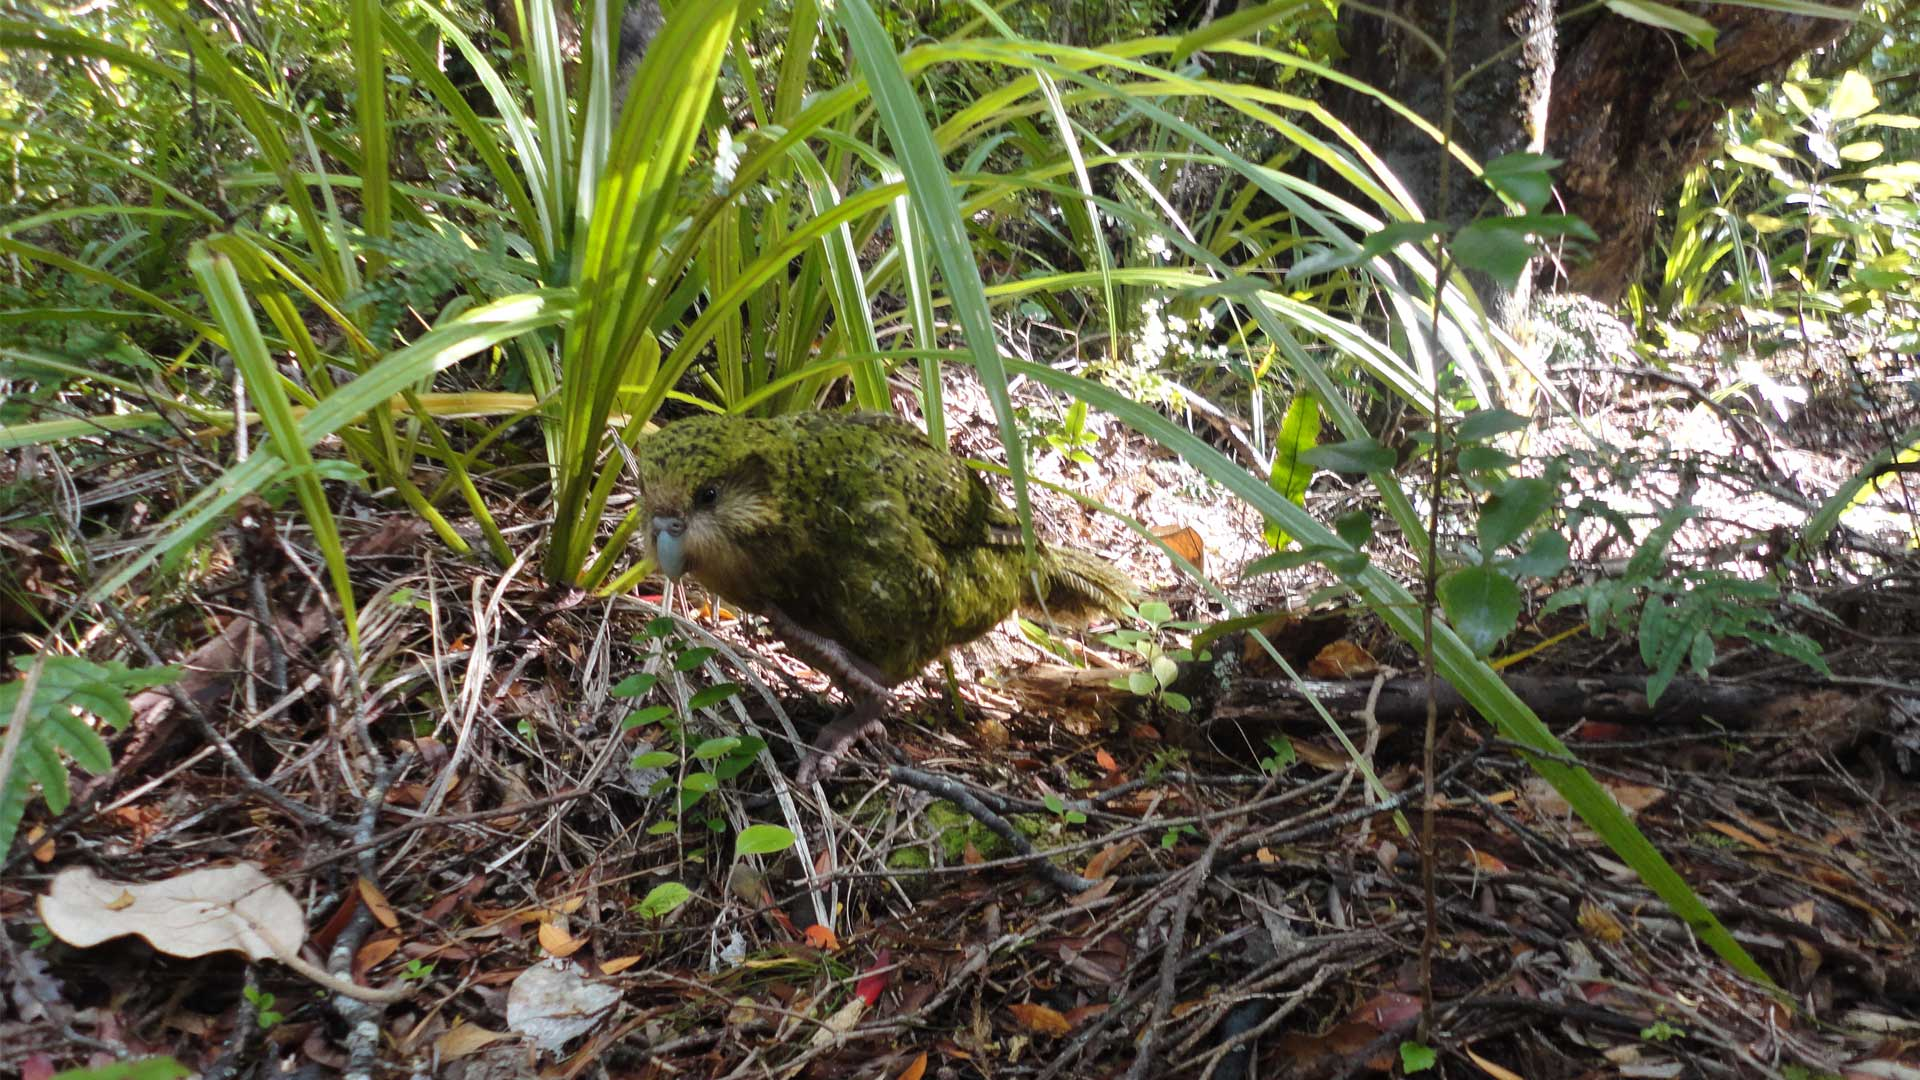 https://rfacdn.nz/zoo/assets/media/kakapo-recovery-gallery-1.jpg